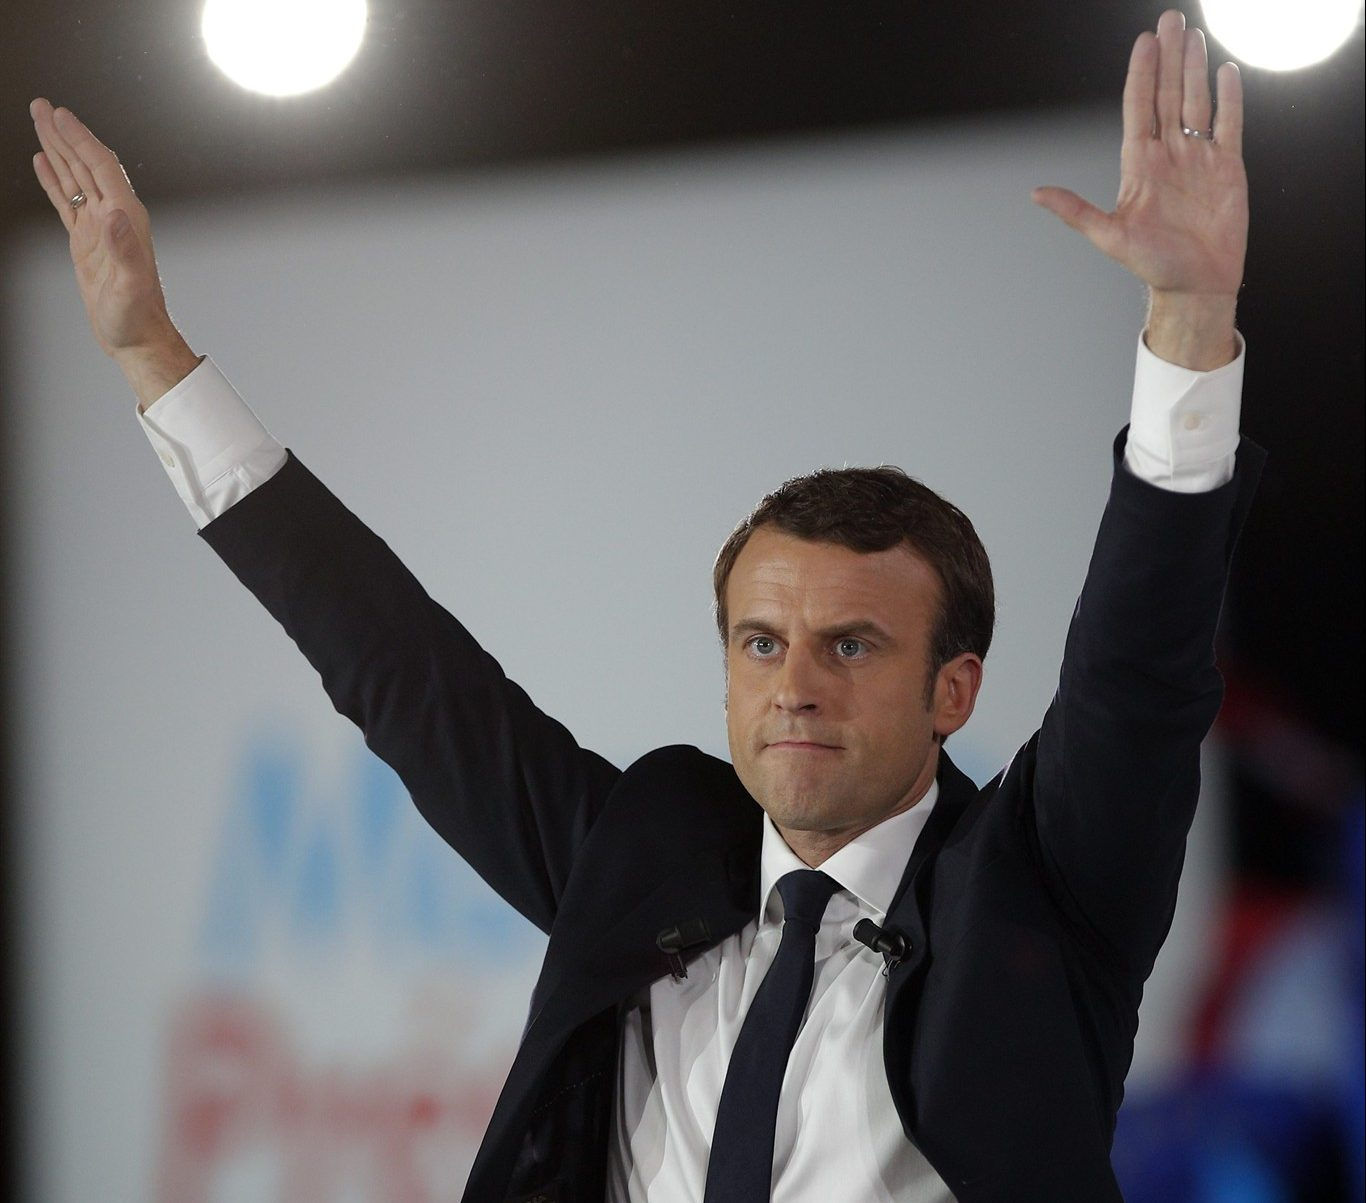 Centrist Emmanuel Macron Becomes France S Youngest President